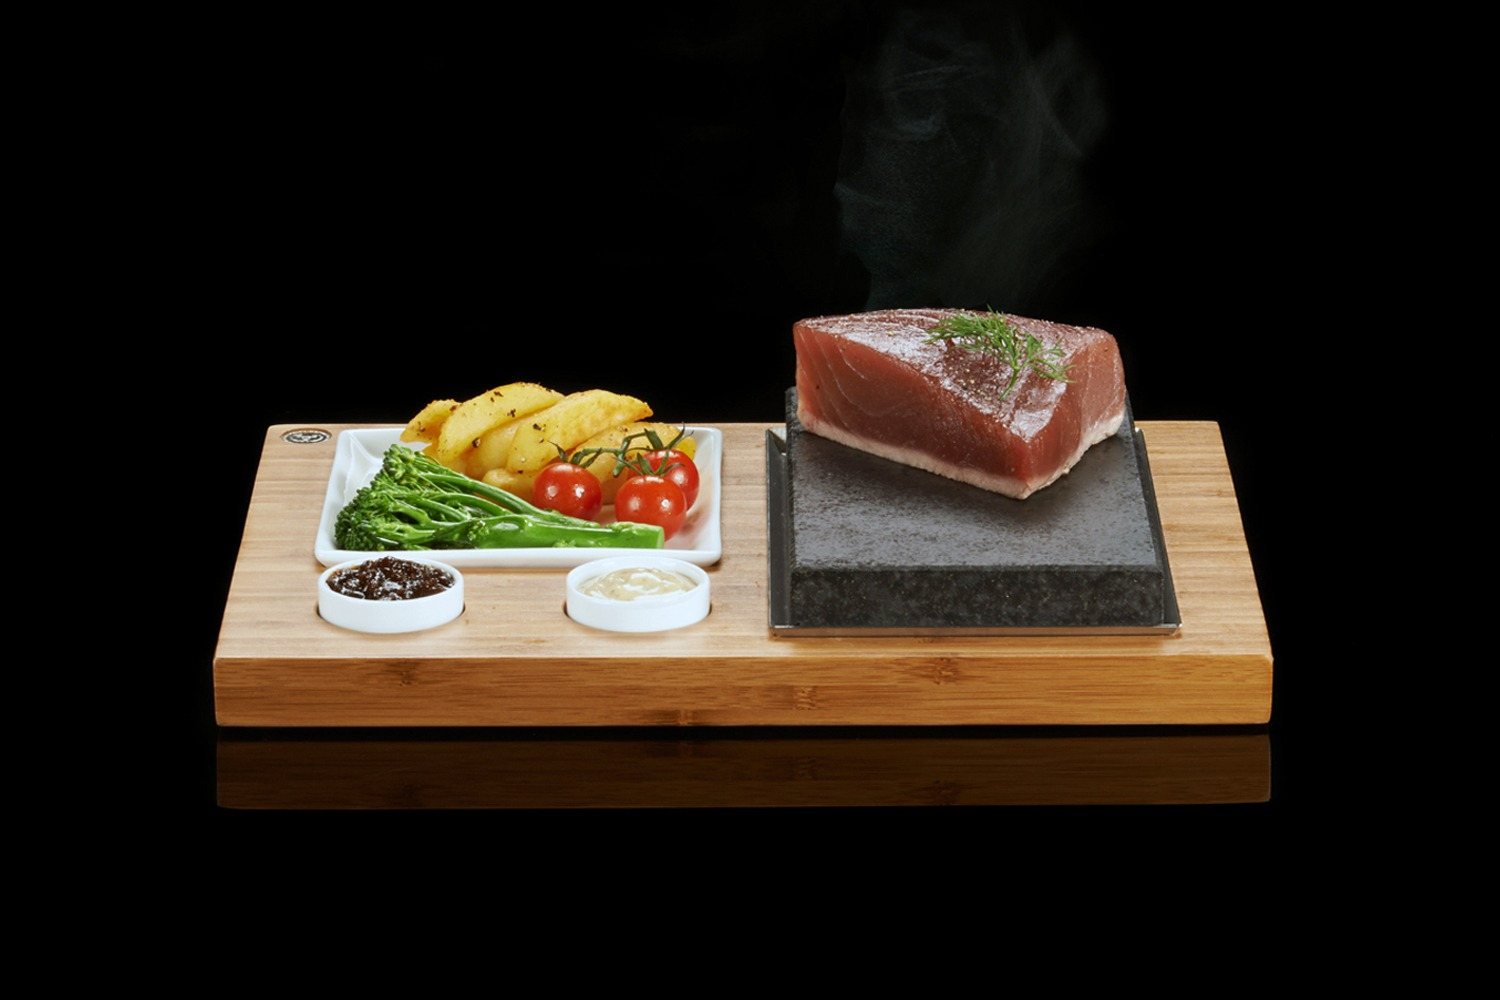 The SteakStones Steak, Sides & Sauces Set with Tuna